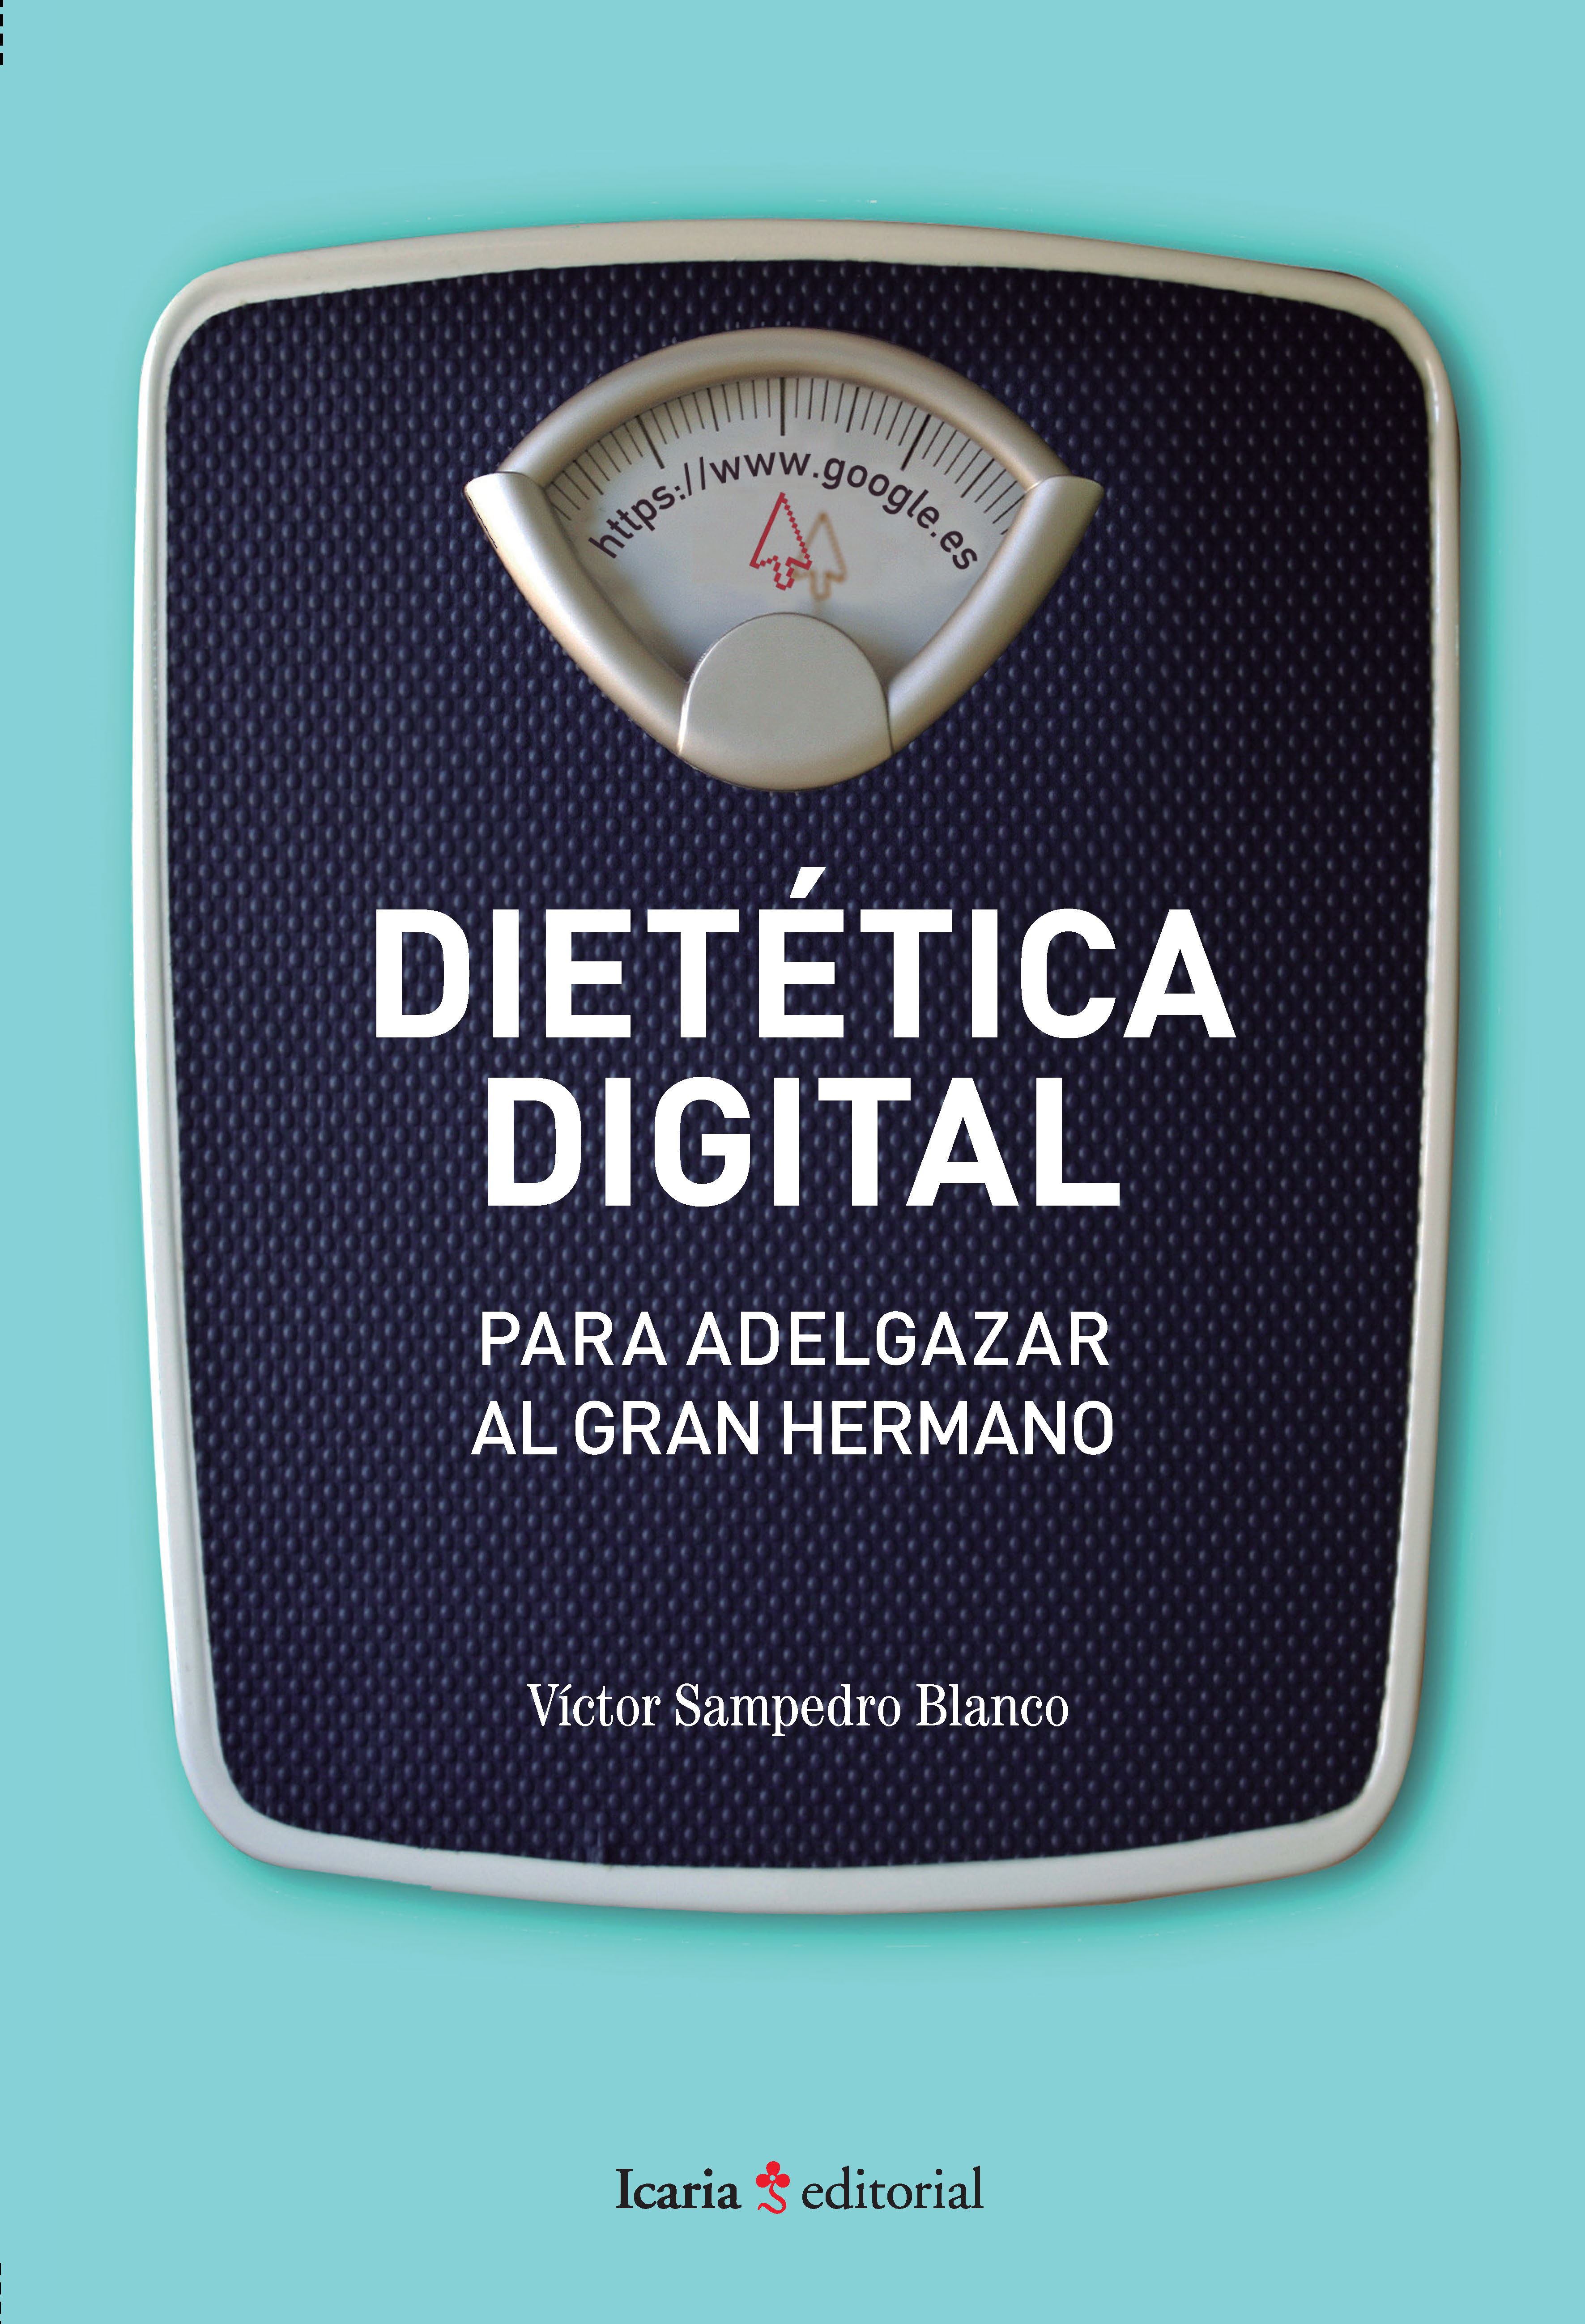 Dietética digital. 9788498888126